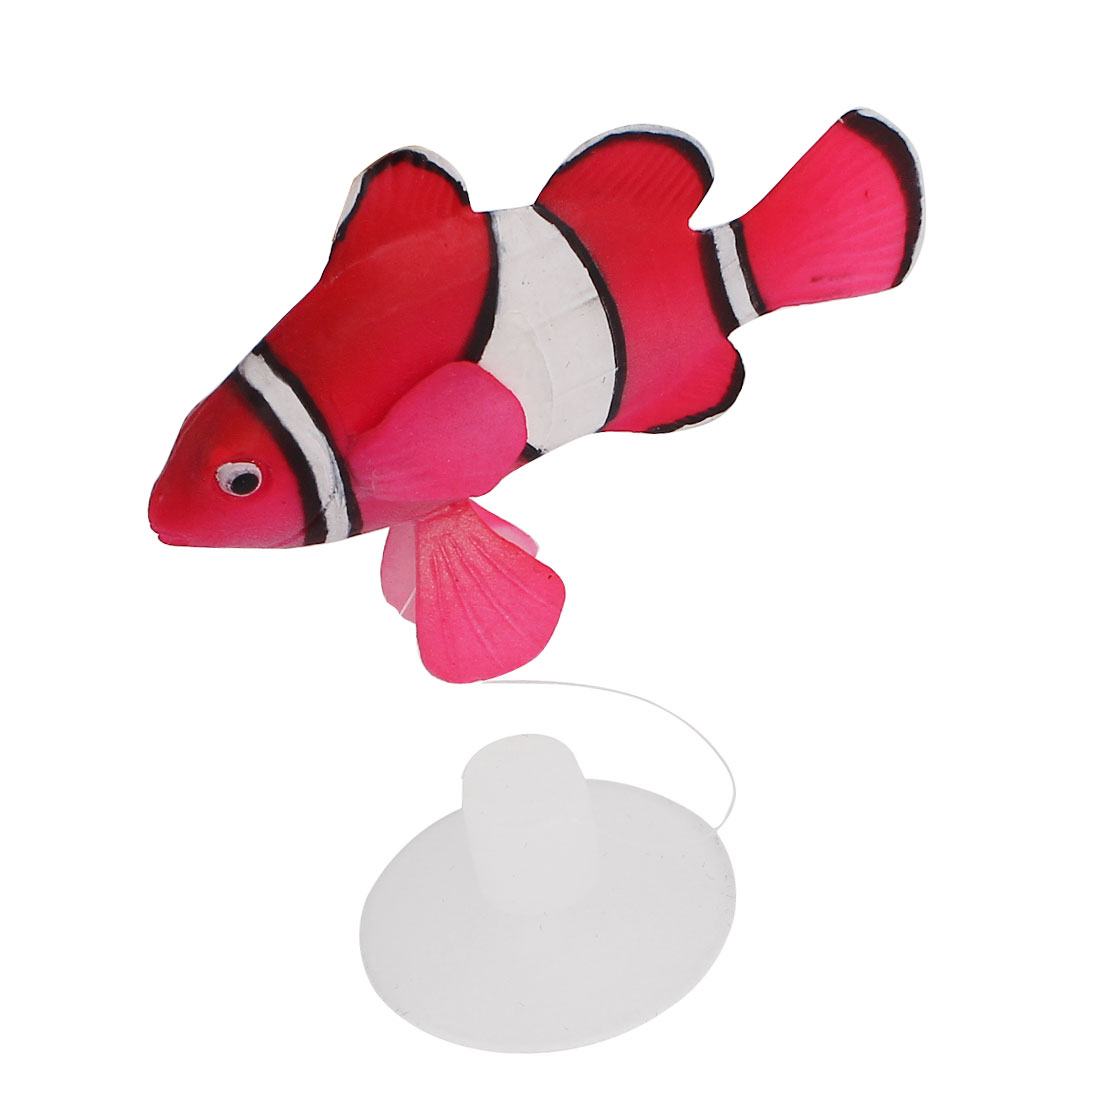 Fish Tank Aquarium Pink Silicone Artificial Floating Clownfish Decor w Suction Cup